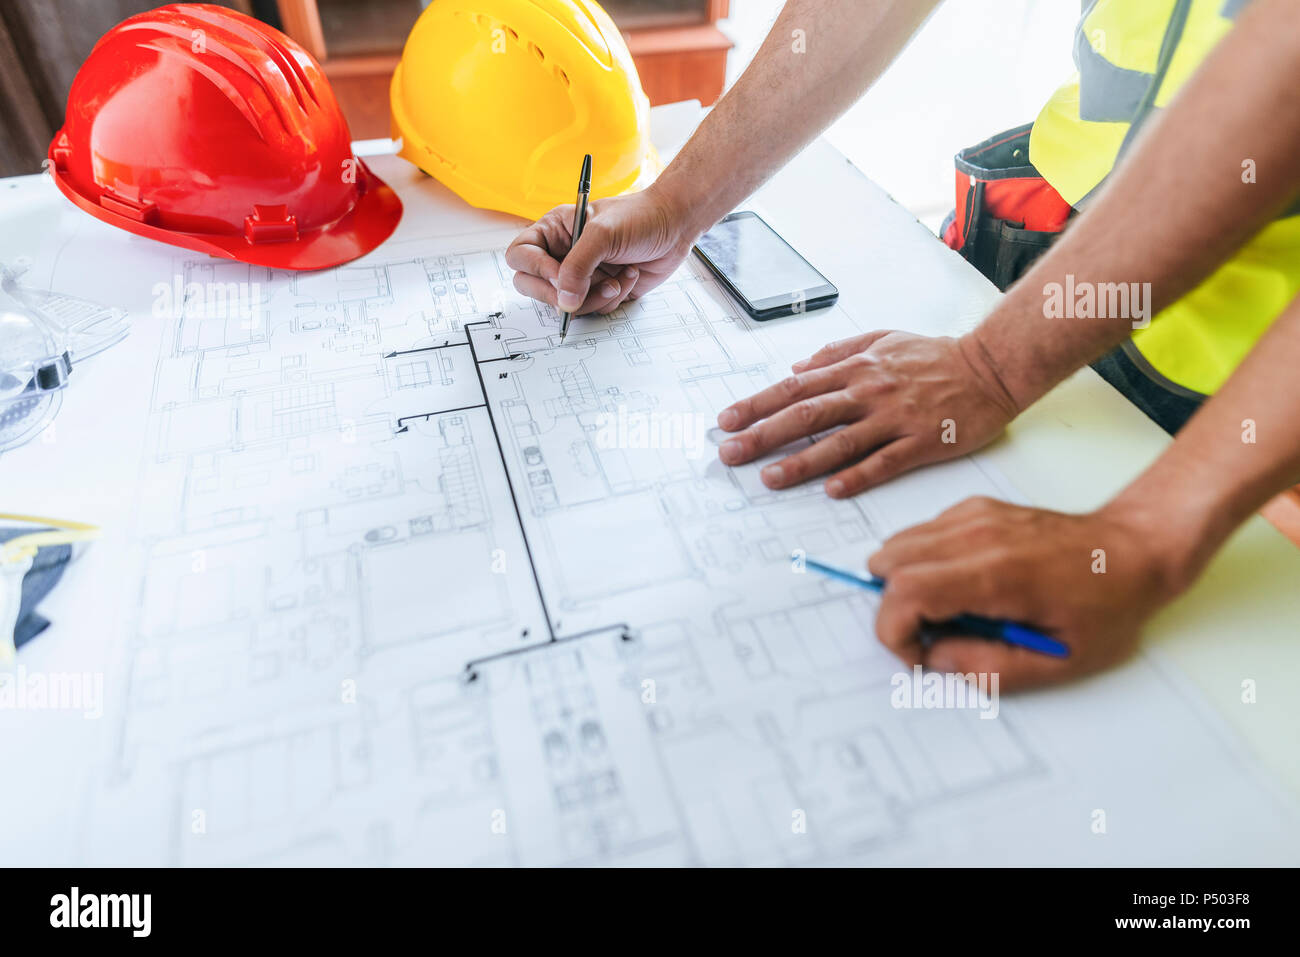 Close-up of workers hands, working on construction plane - Stock Image